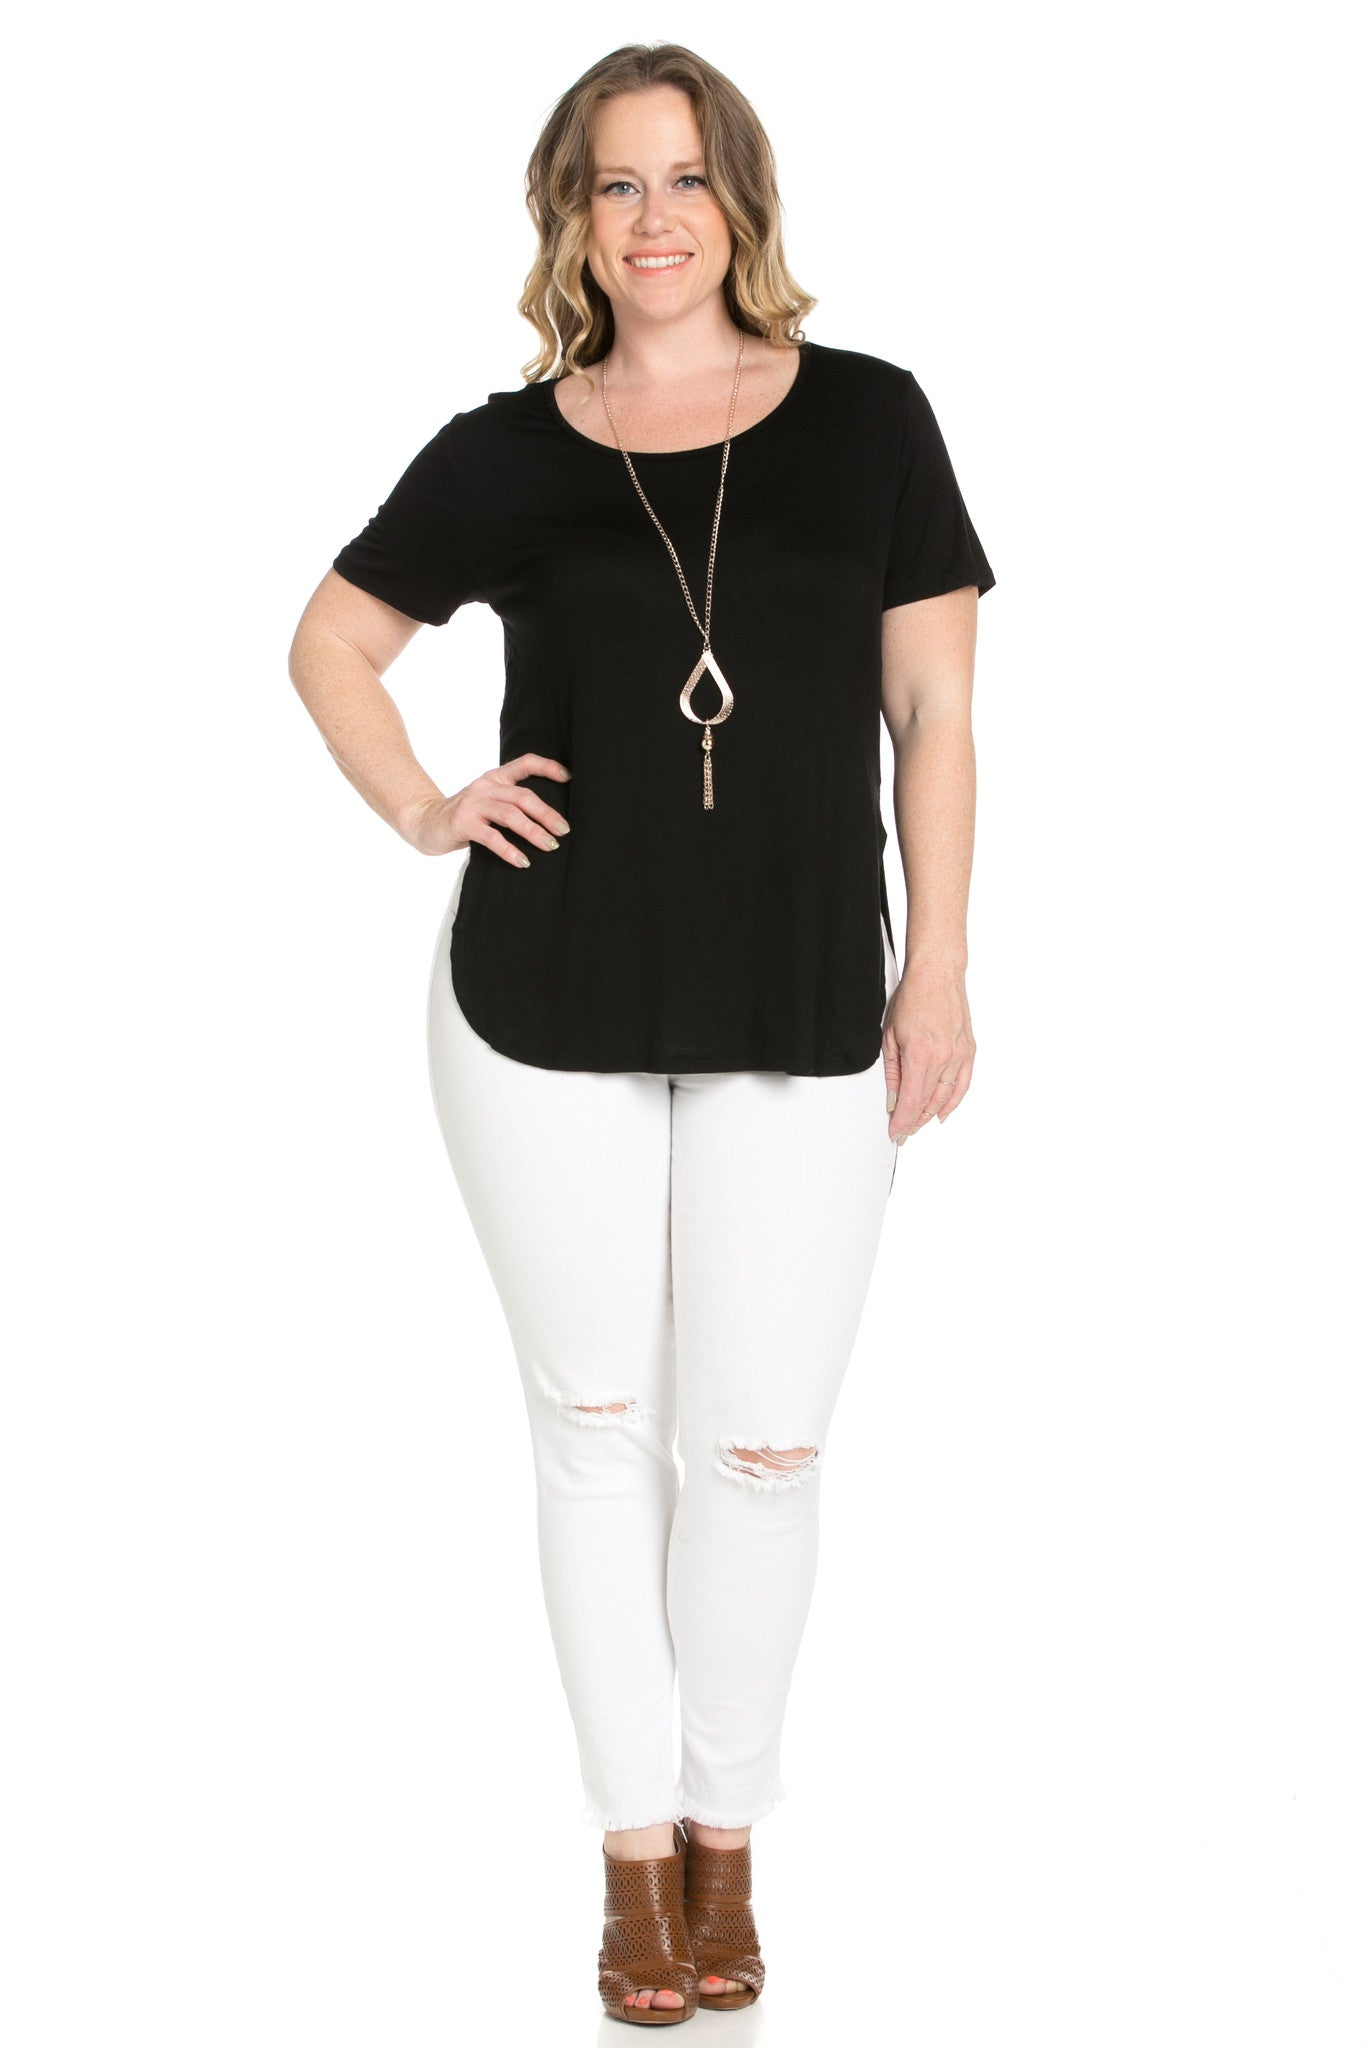 Black Plus Size High-low Scoop Neck Shirt - Blouses - My Yuccie - 7